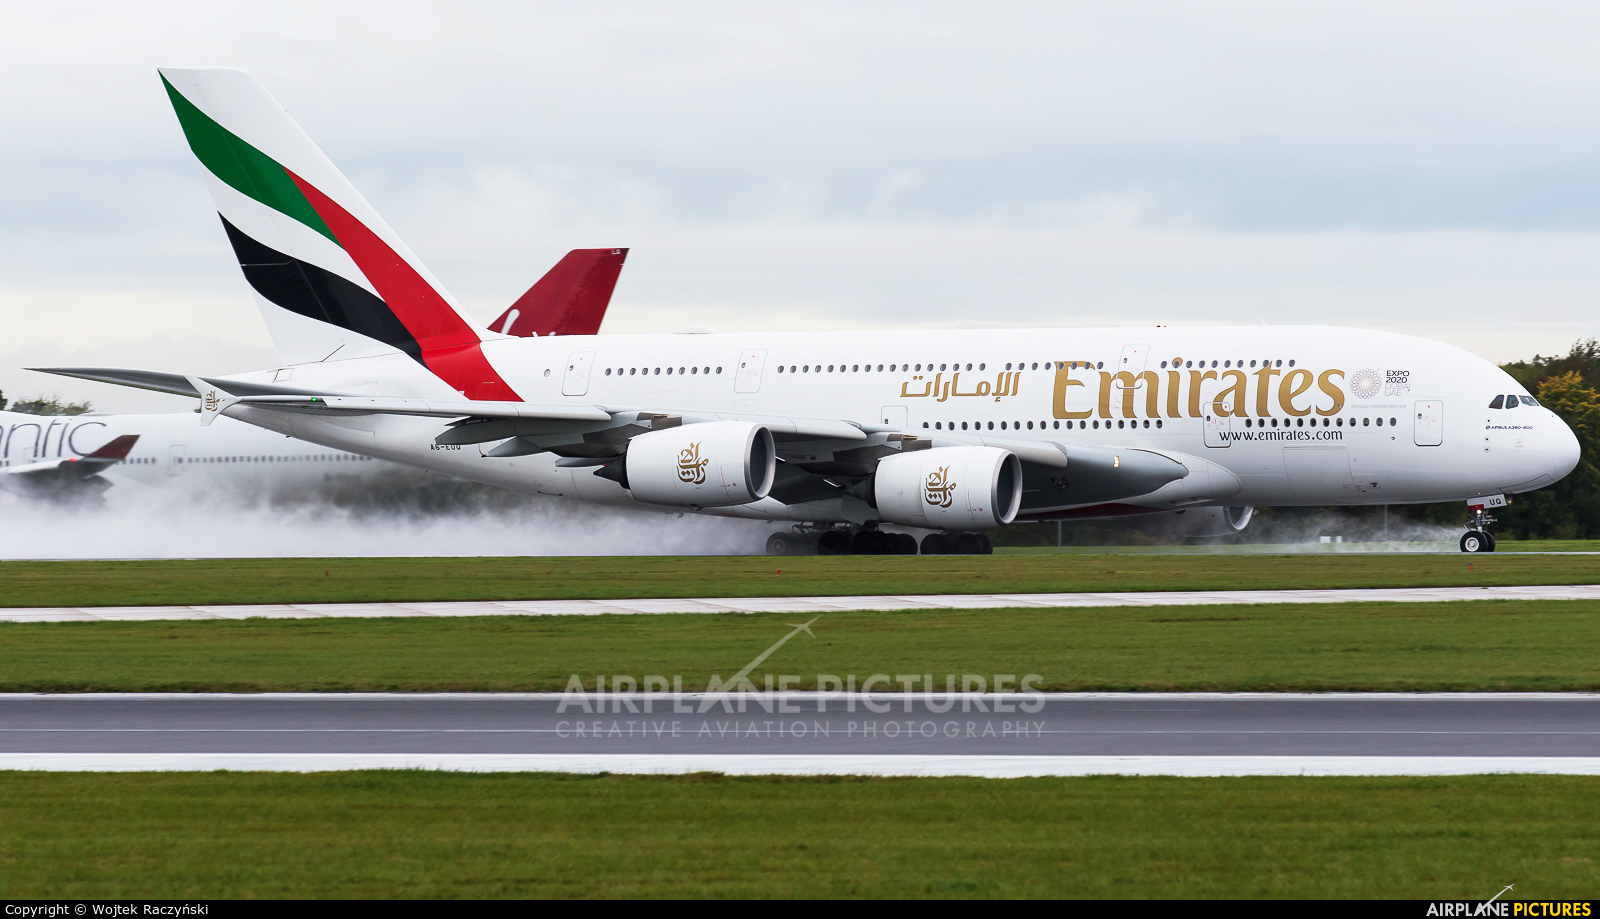 Emirates Airlines A6-EUQ aircraft at Manchester